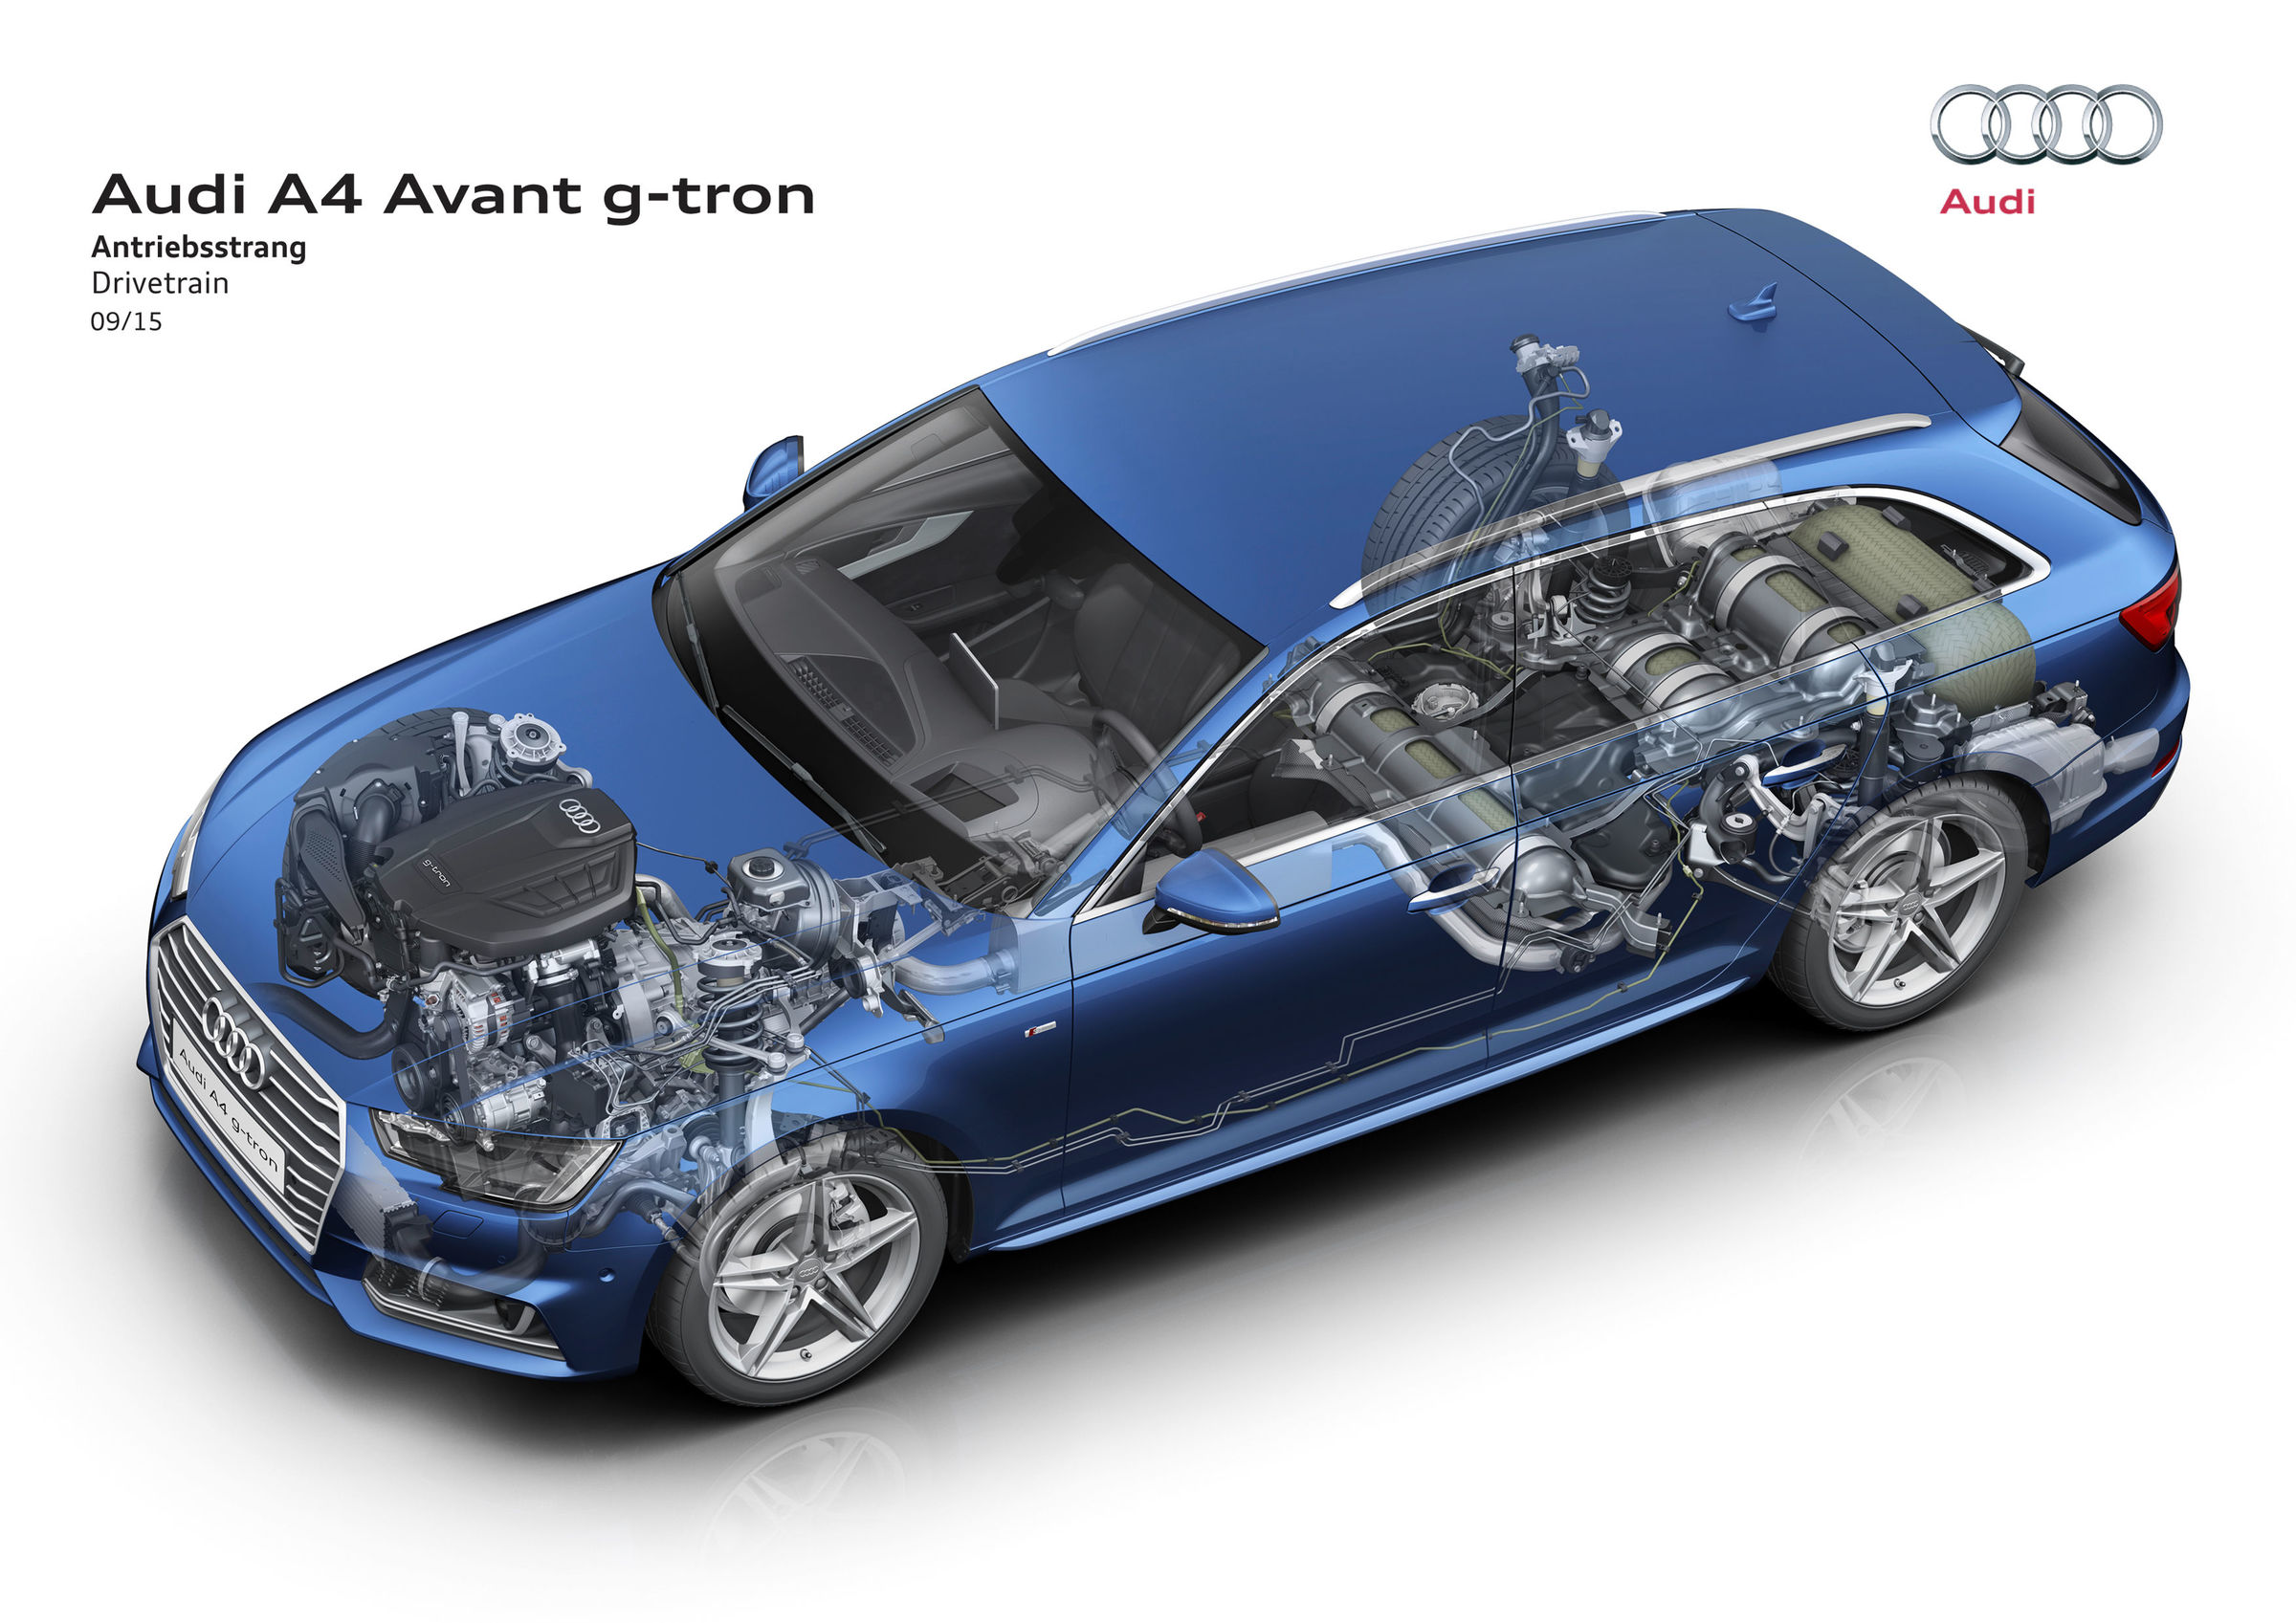 Power From Gas The New Audi A4 Avant G Tron Audi Mediacenter